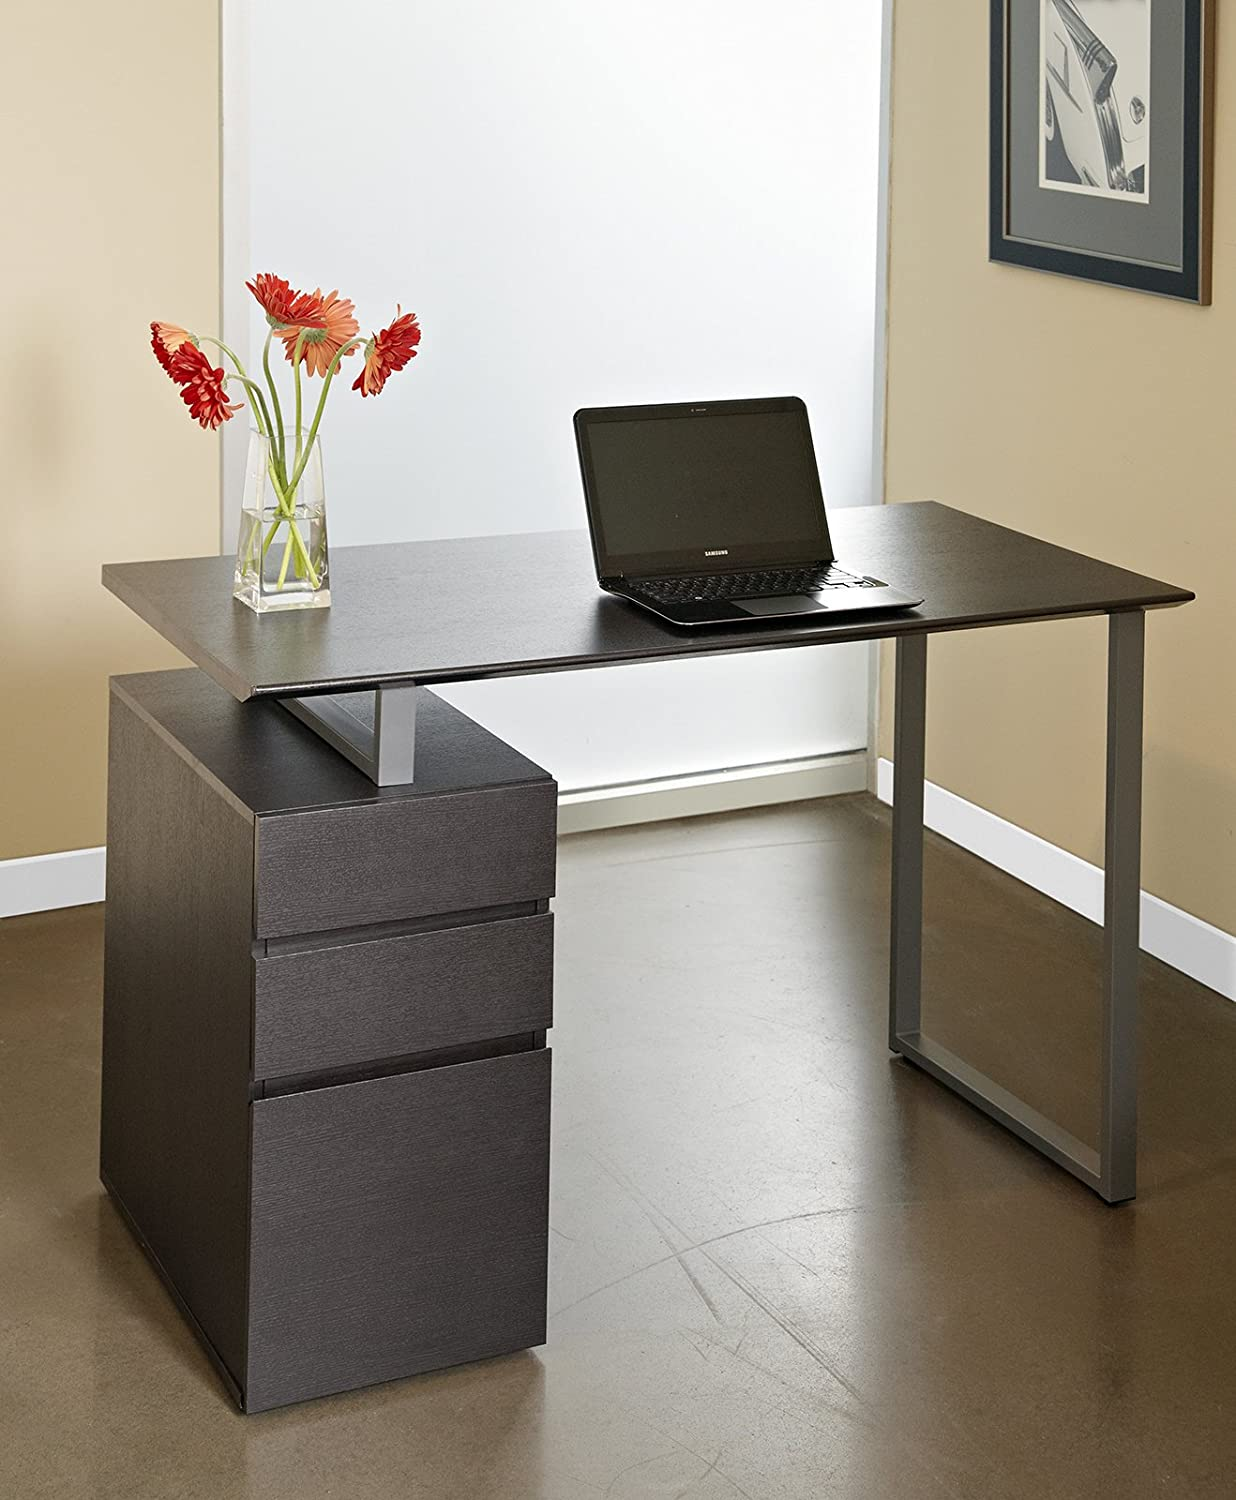 unique office desk. Amazon.com: Unique Furniture 220-ESP Writing Desk With Drawers, Espresso: Kitchen \u0026 Dining Office P